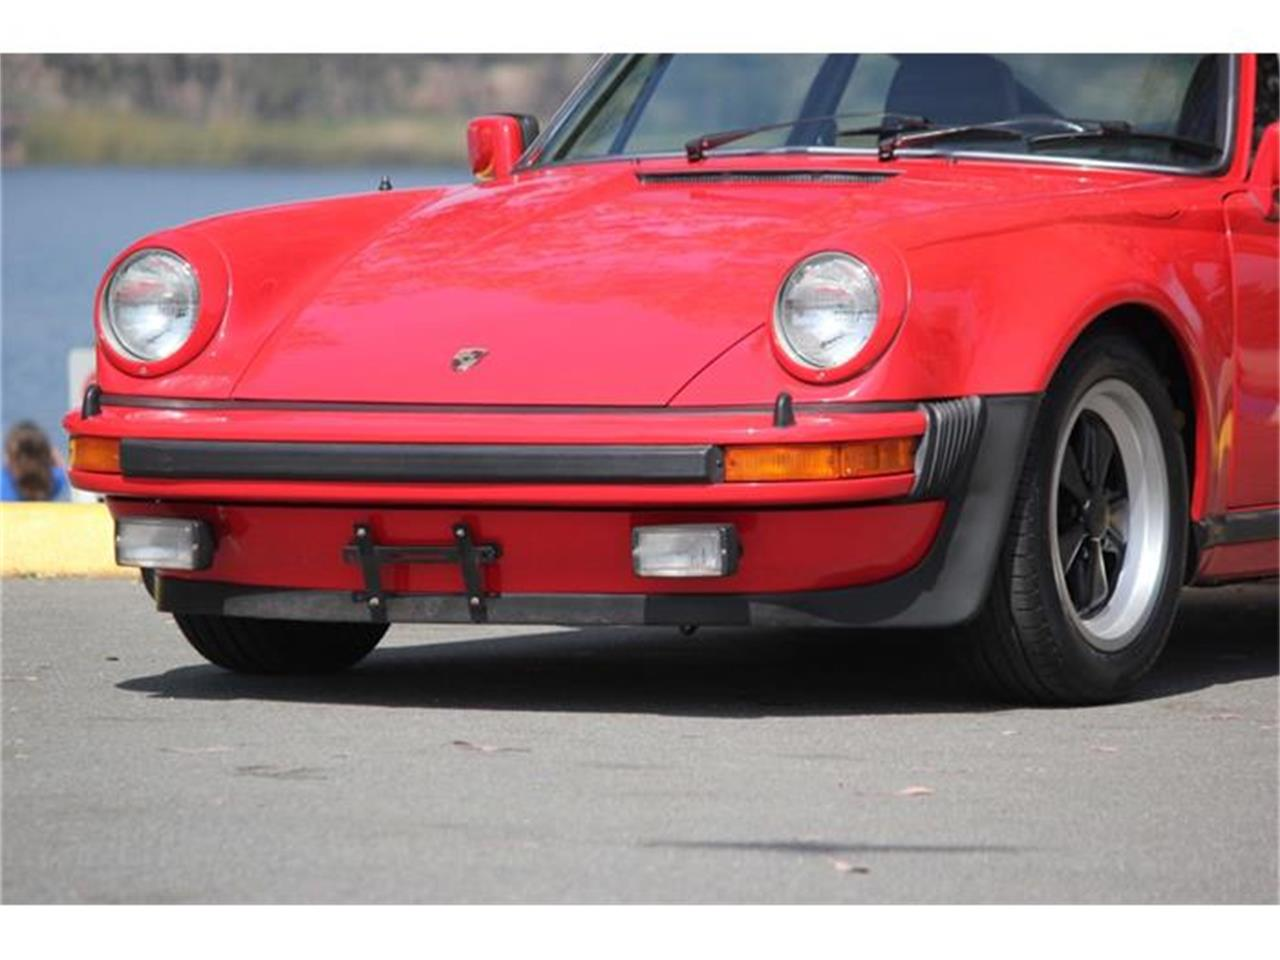 Large Picture of '79 Porsche 930 Turbo located in California - $139,500.00 Offered by Precious Metals - GOQB